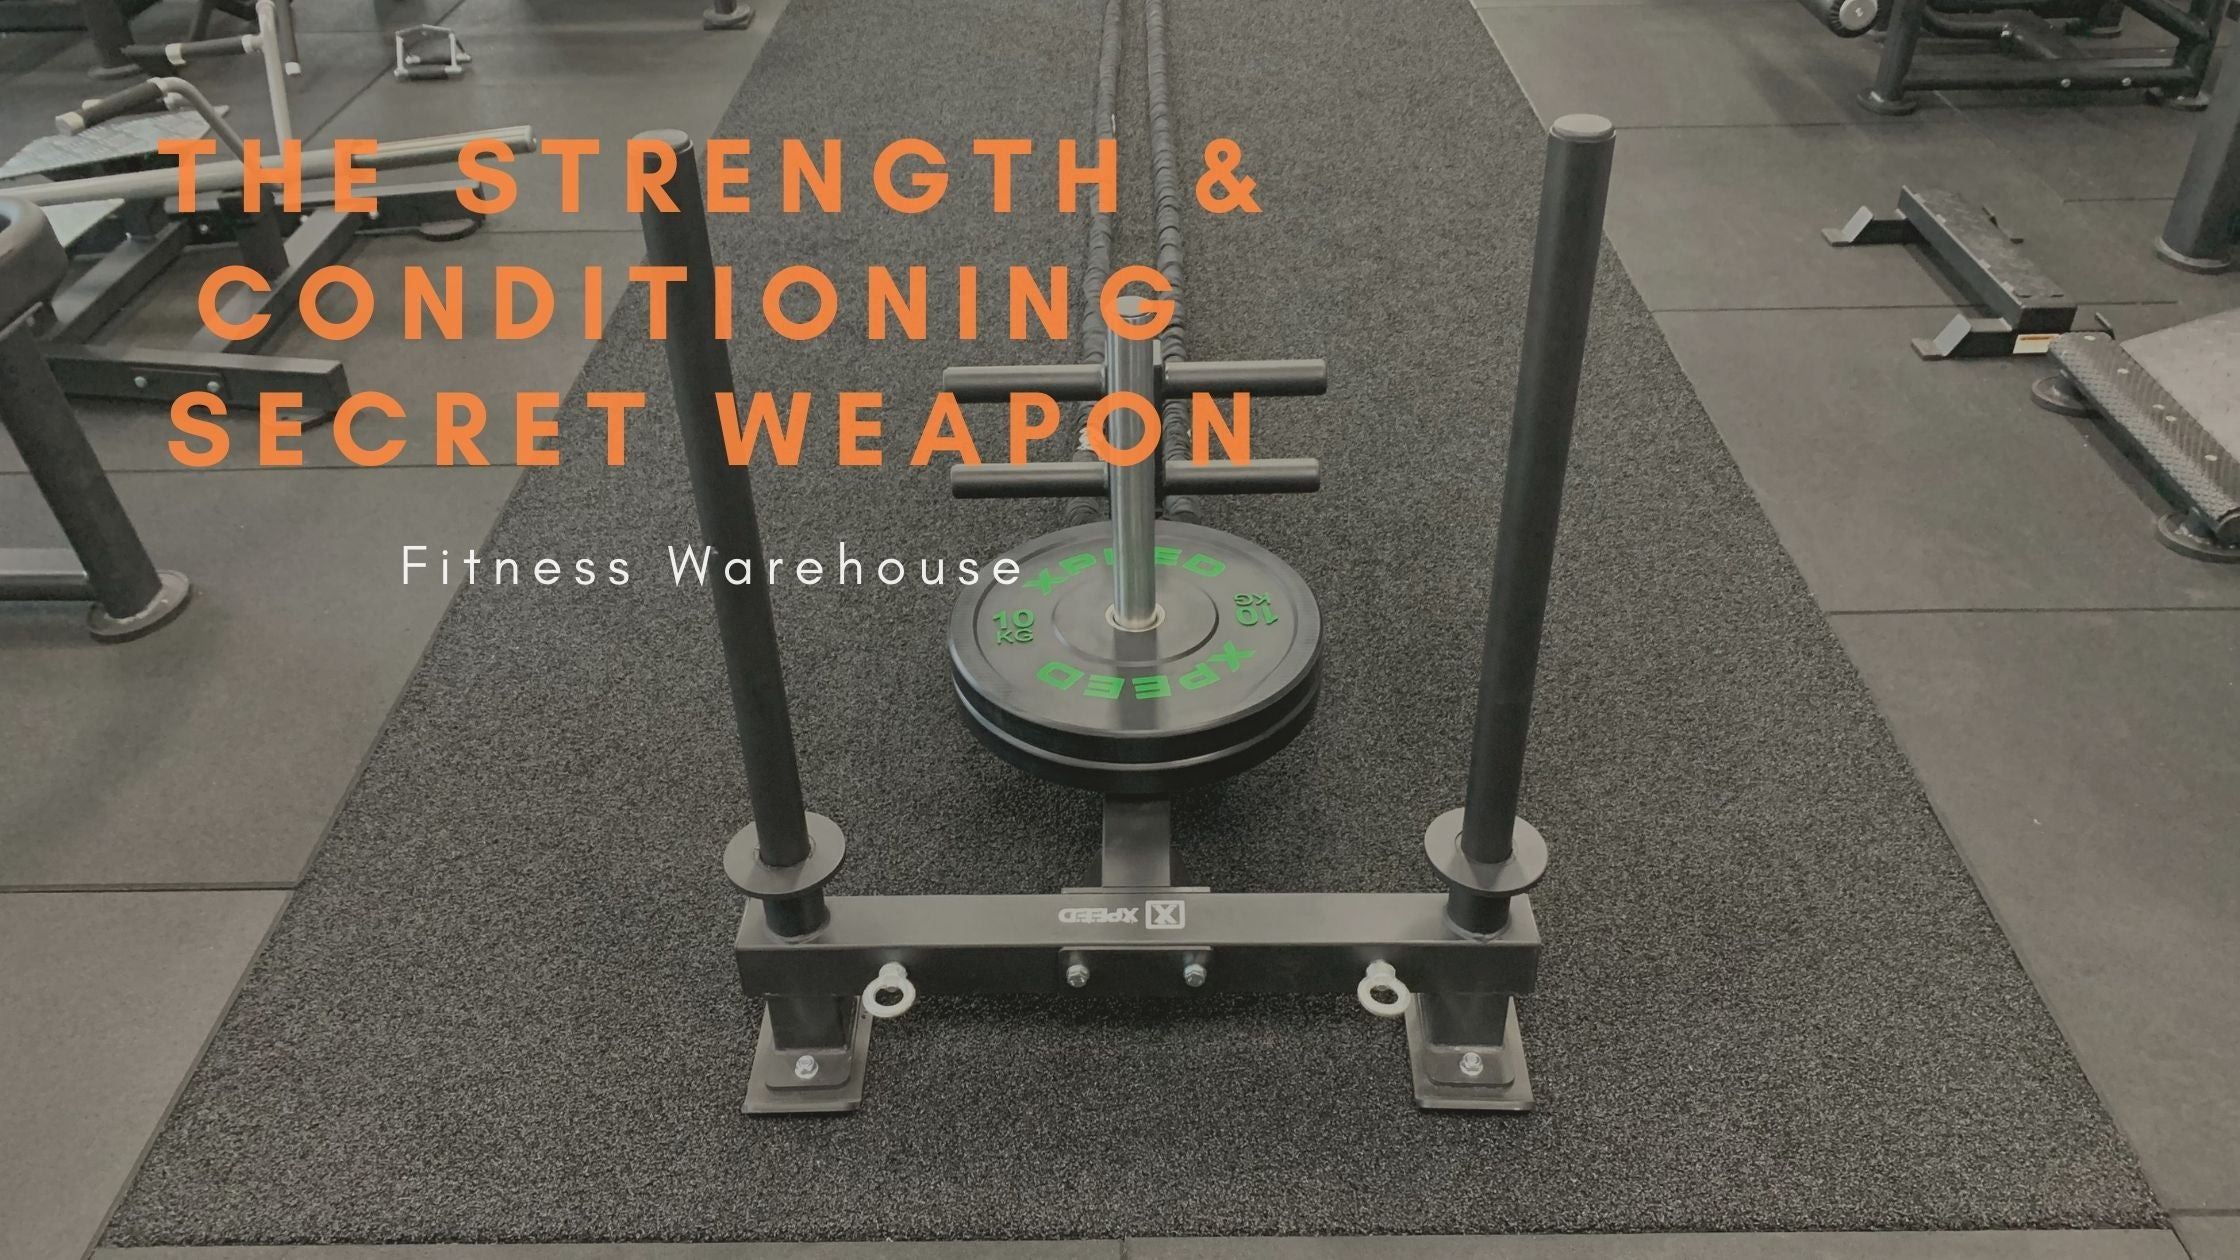 The Prowler Sled. Your Strength & Conditioning Coach's Secret Weapon